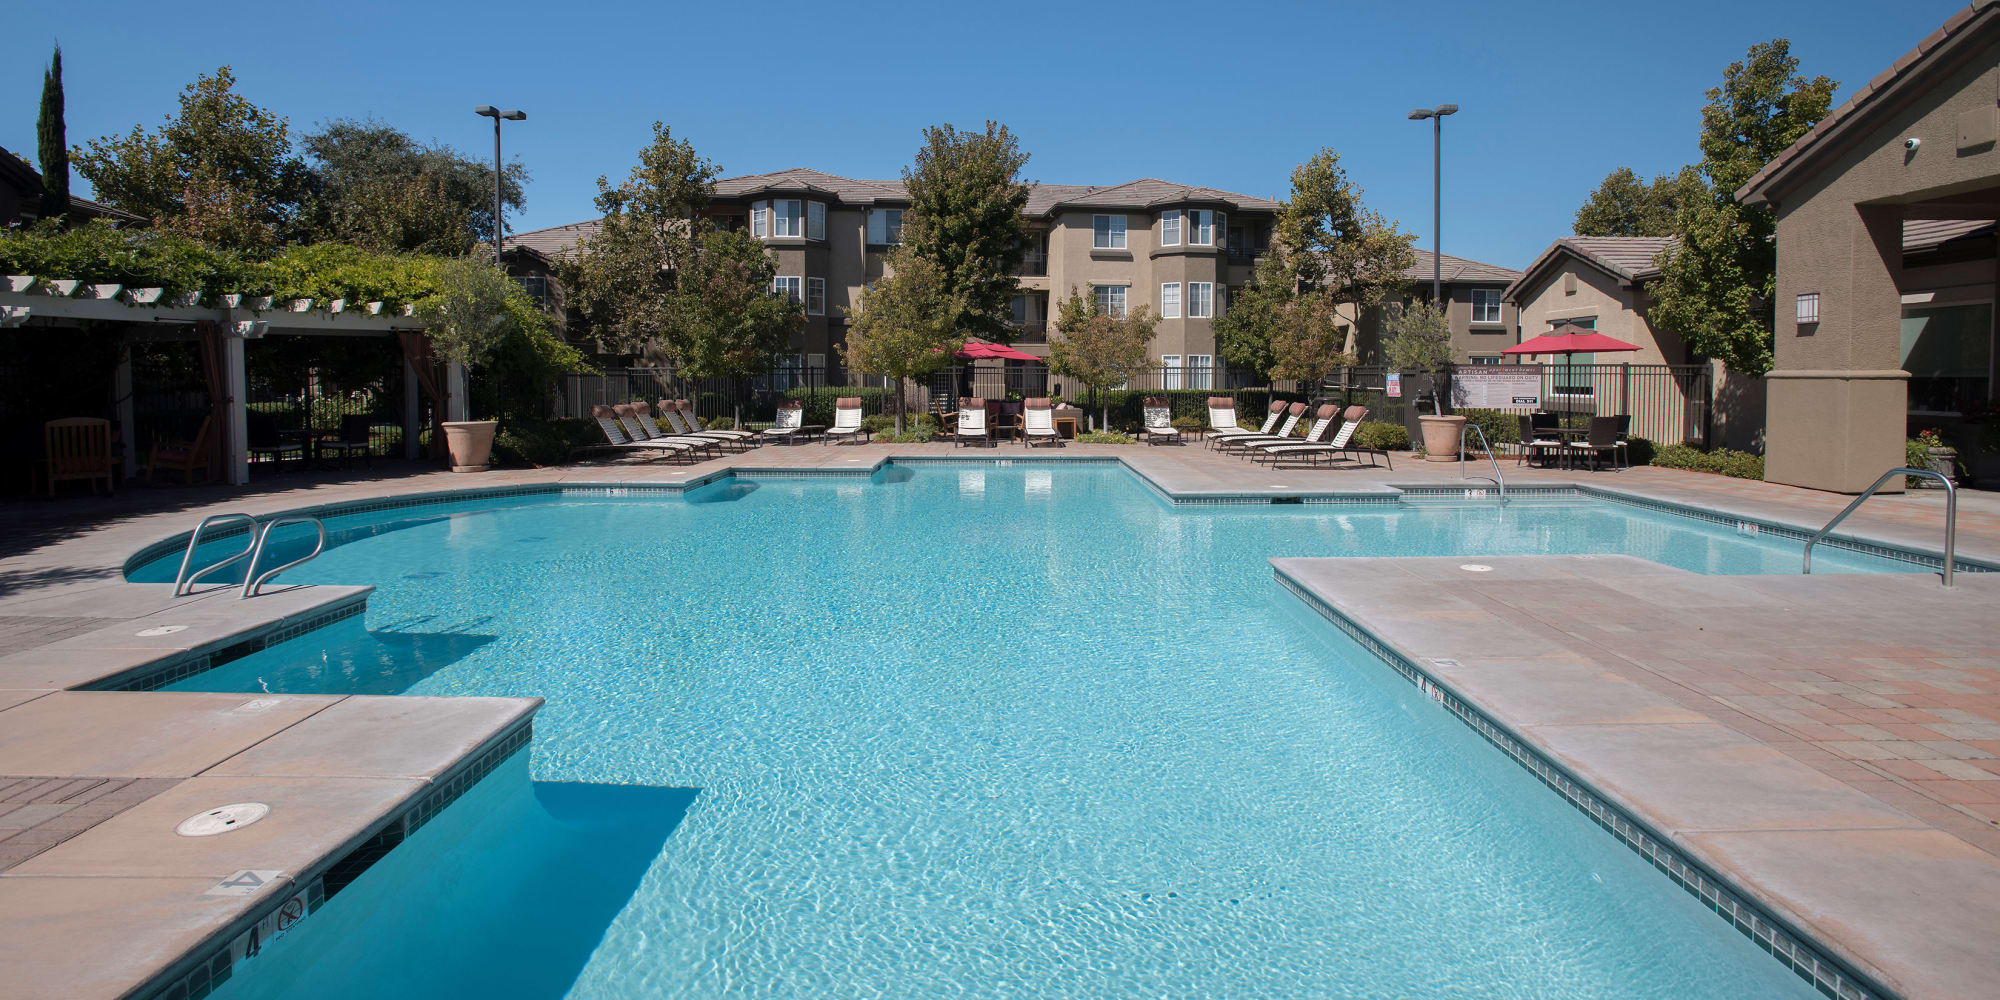 Apartments at The Artisan Apartment Homes in Sacramento, California